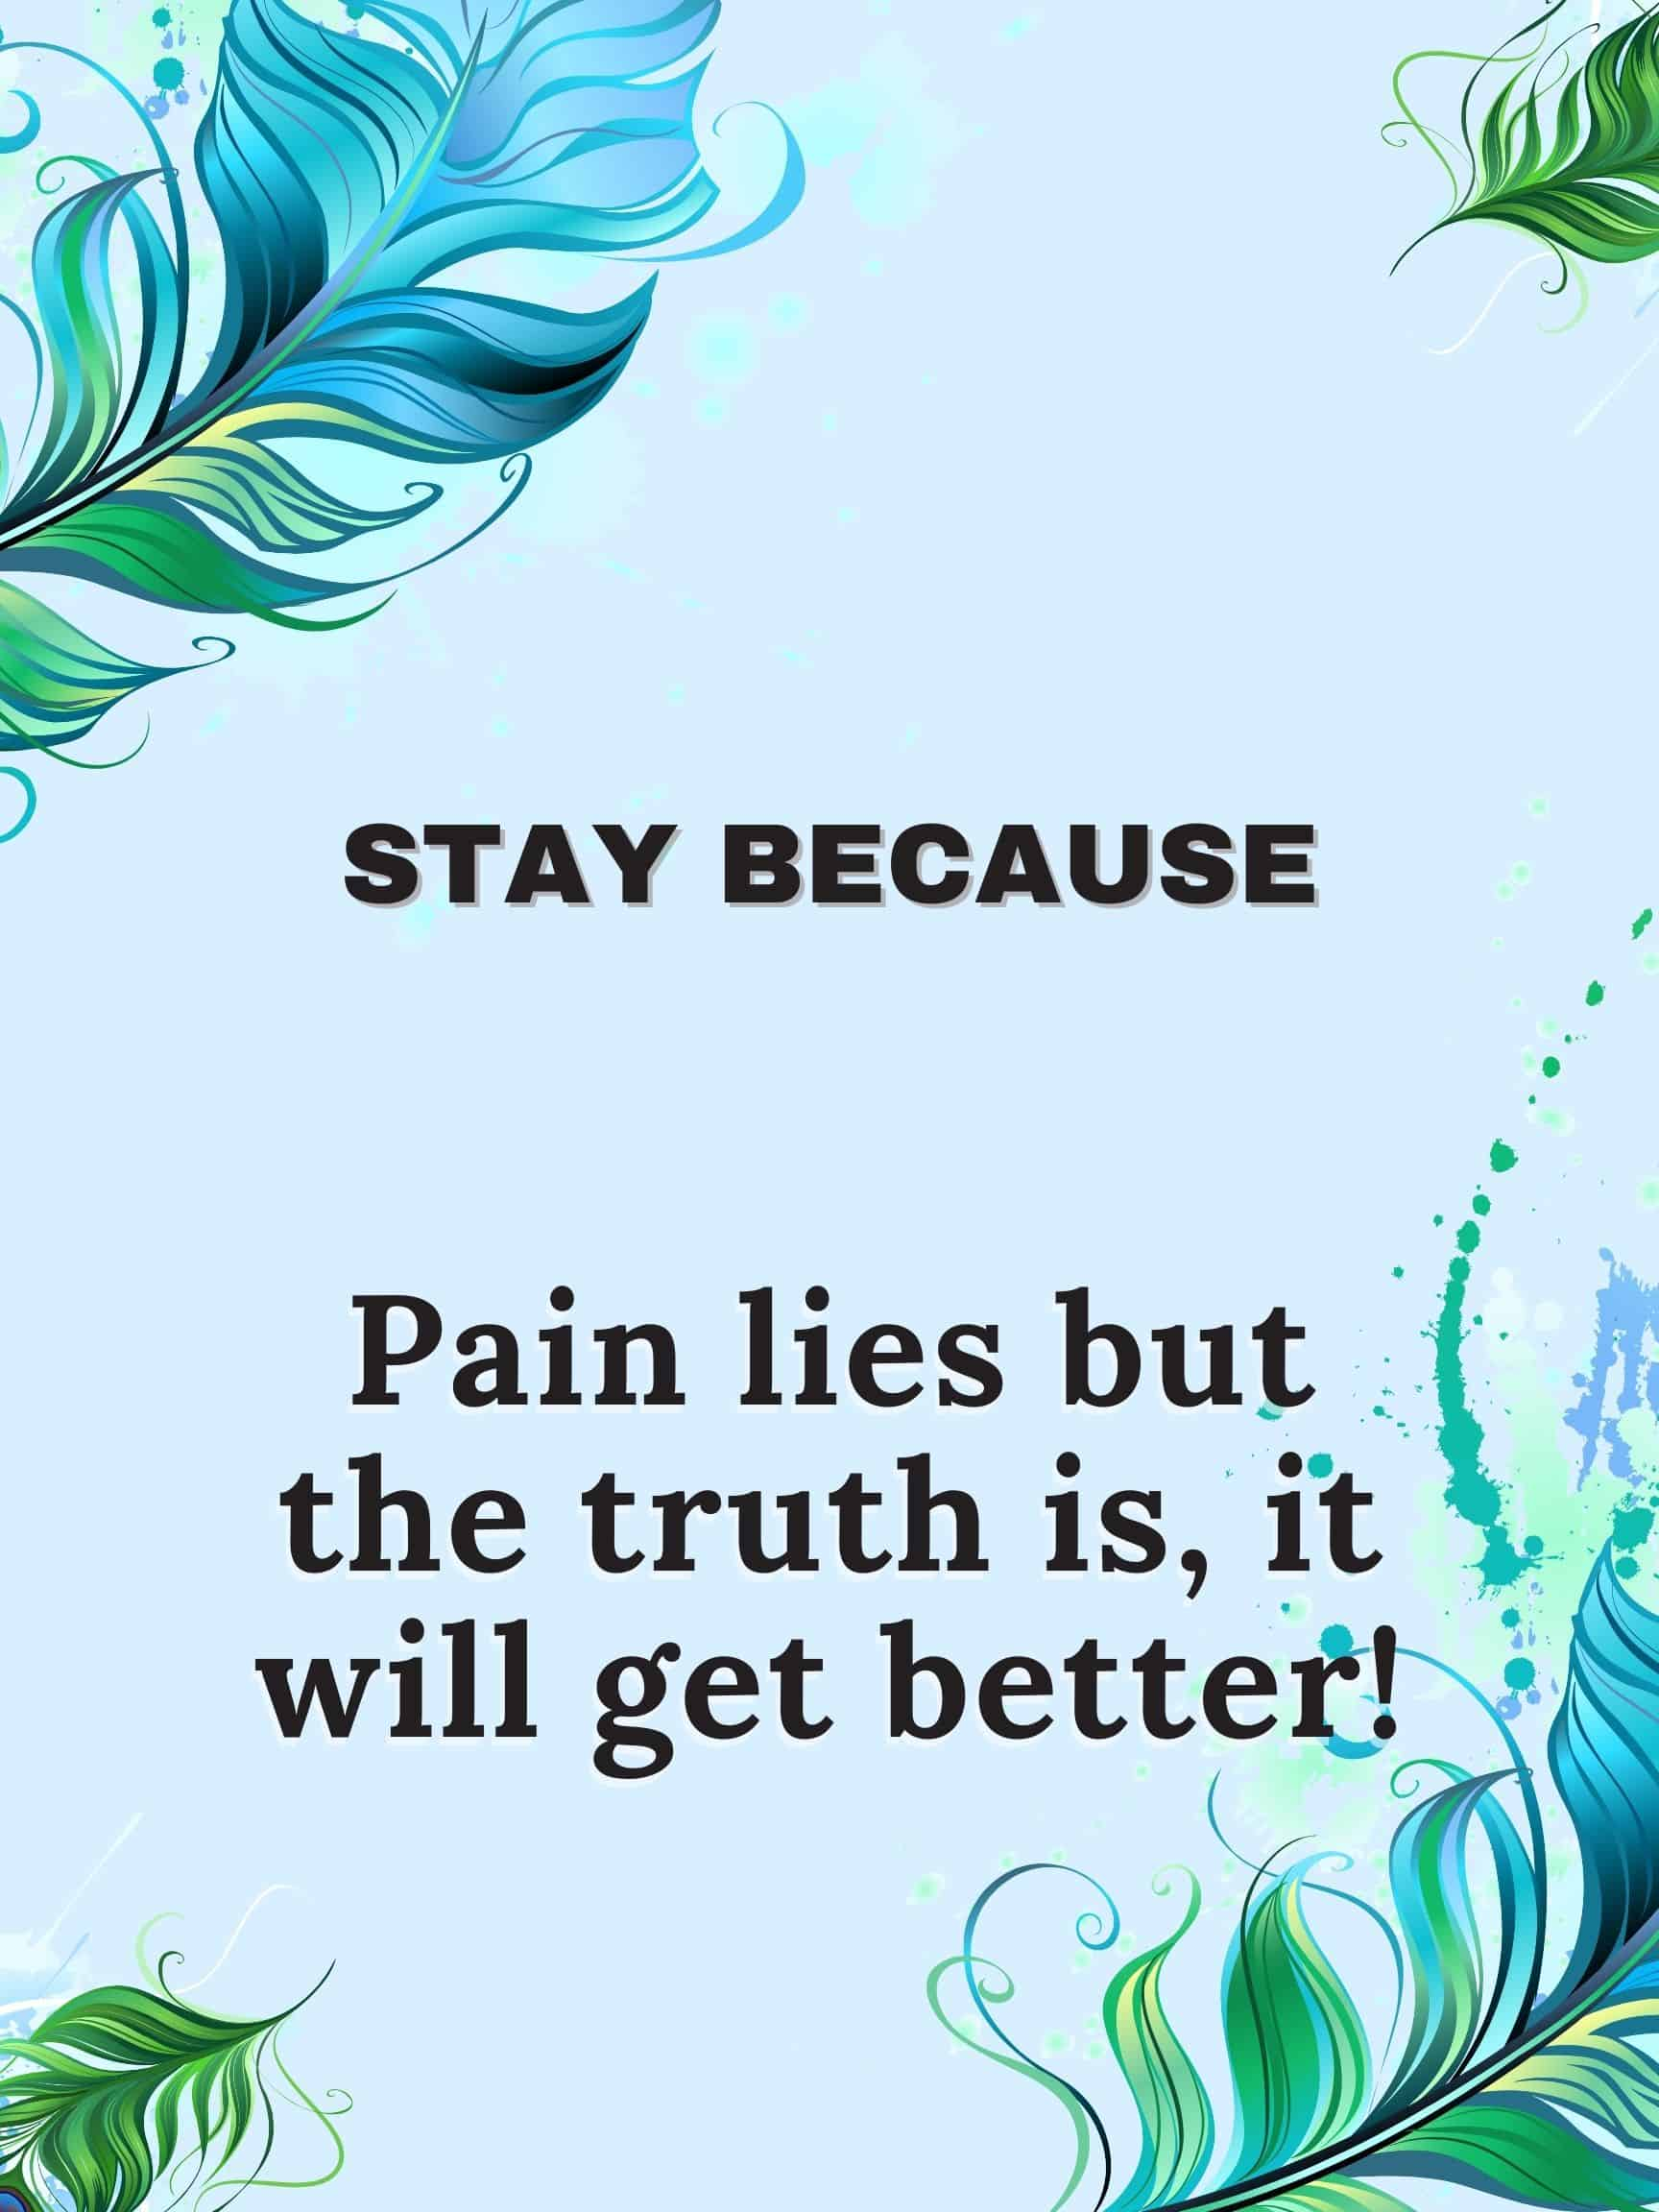 Stay because pain lies but the truth is, it will get better #StayBecause